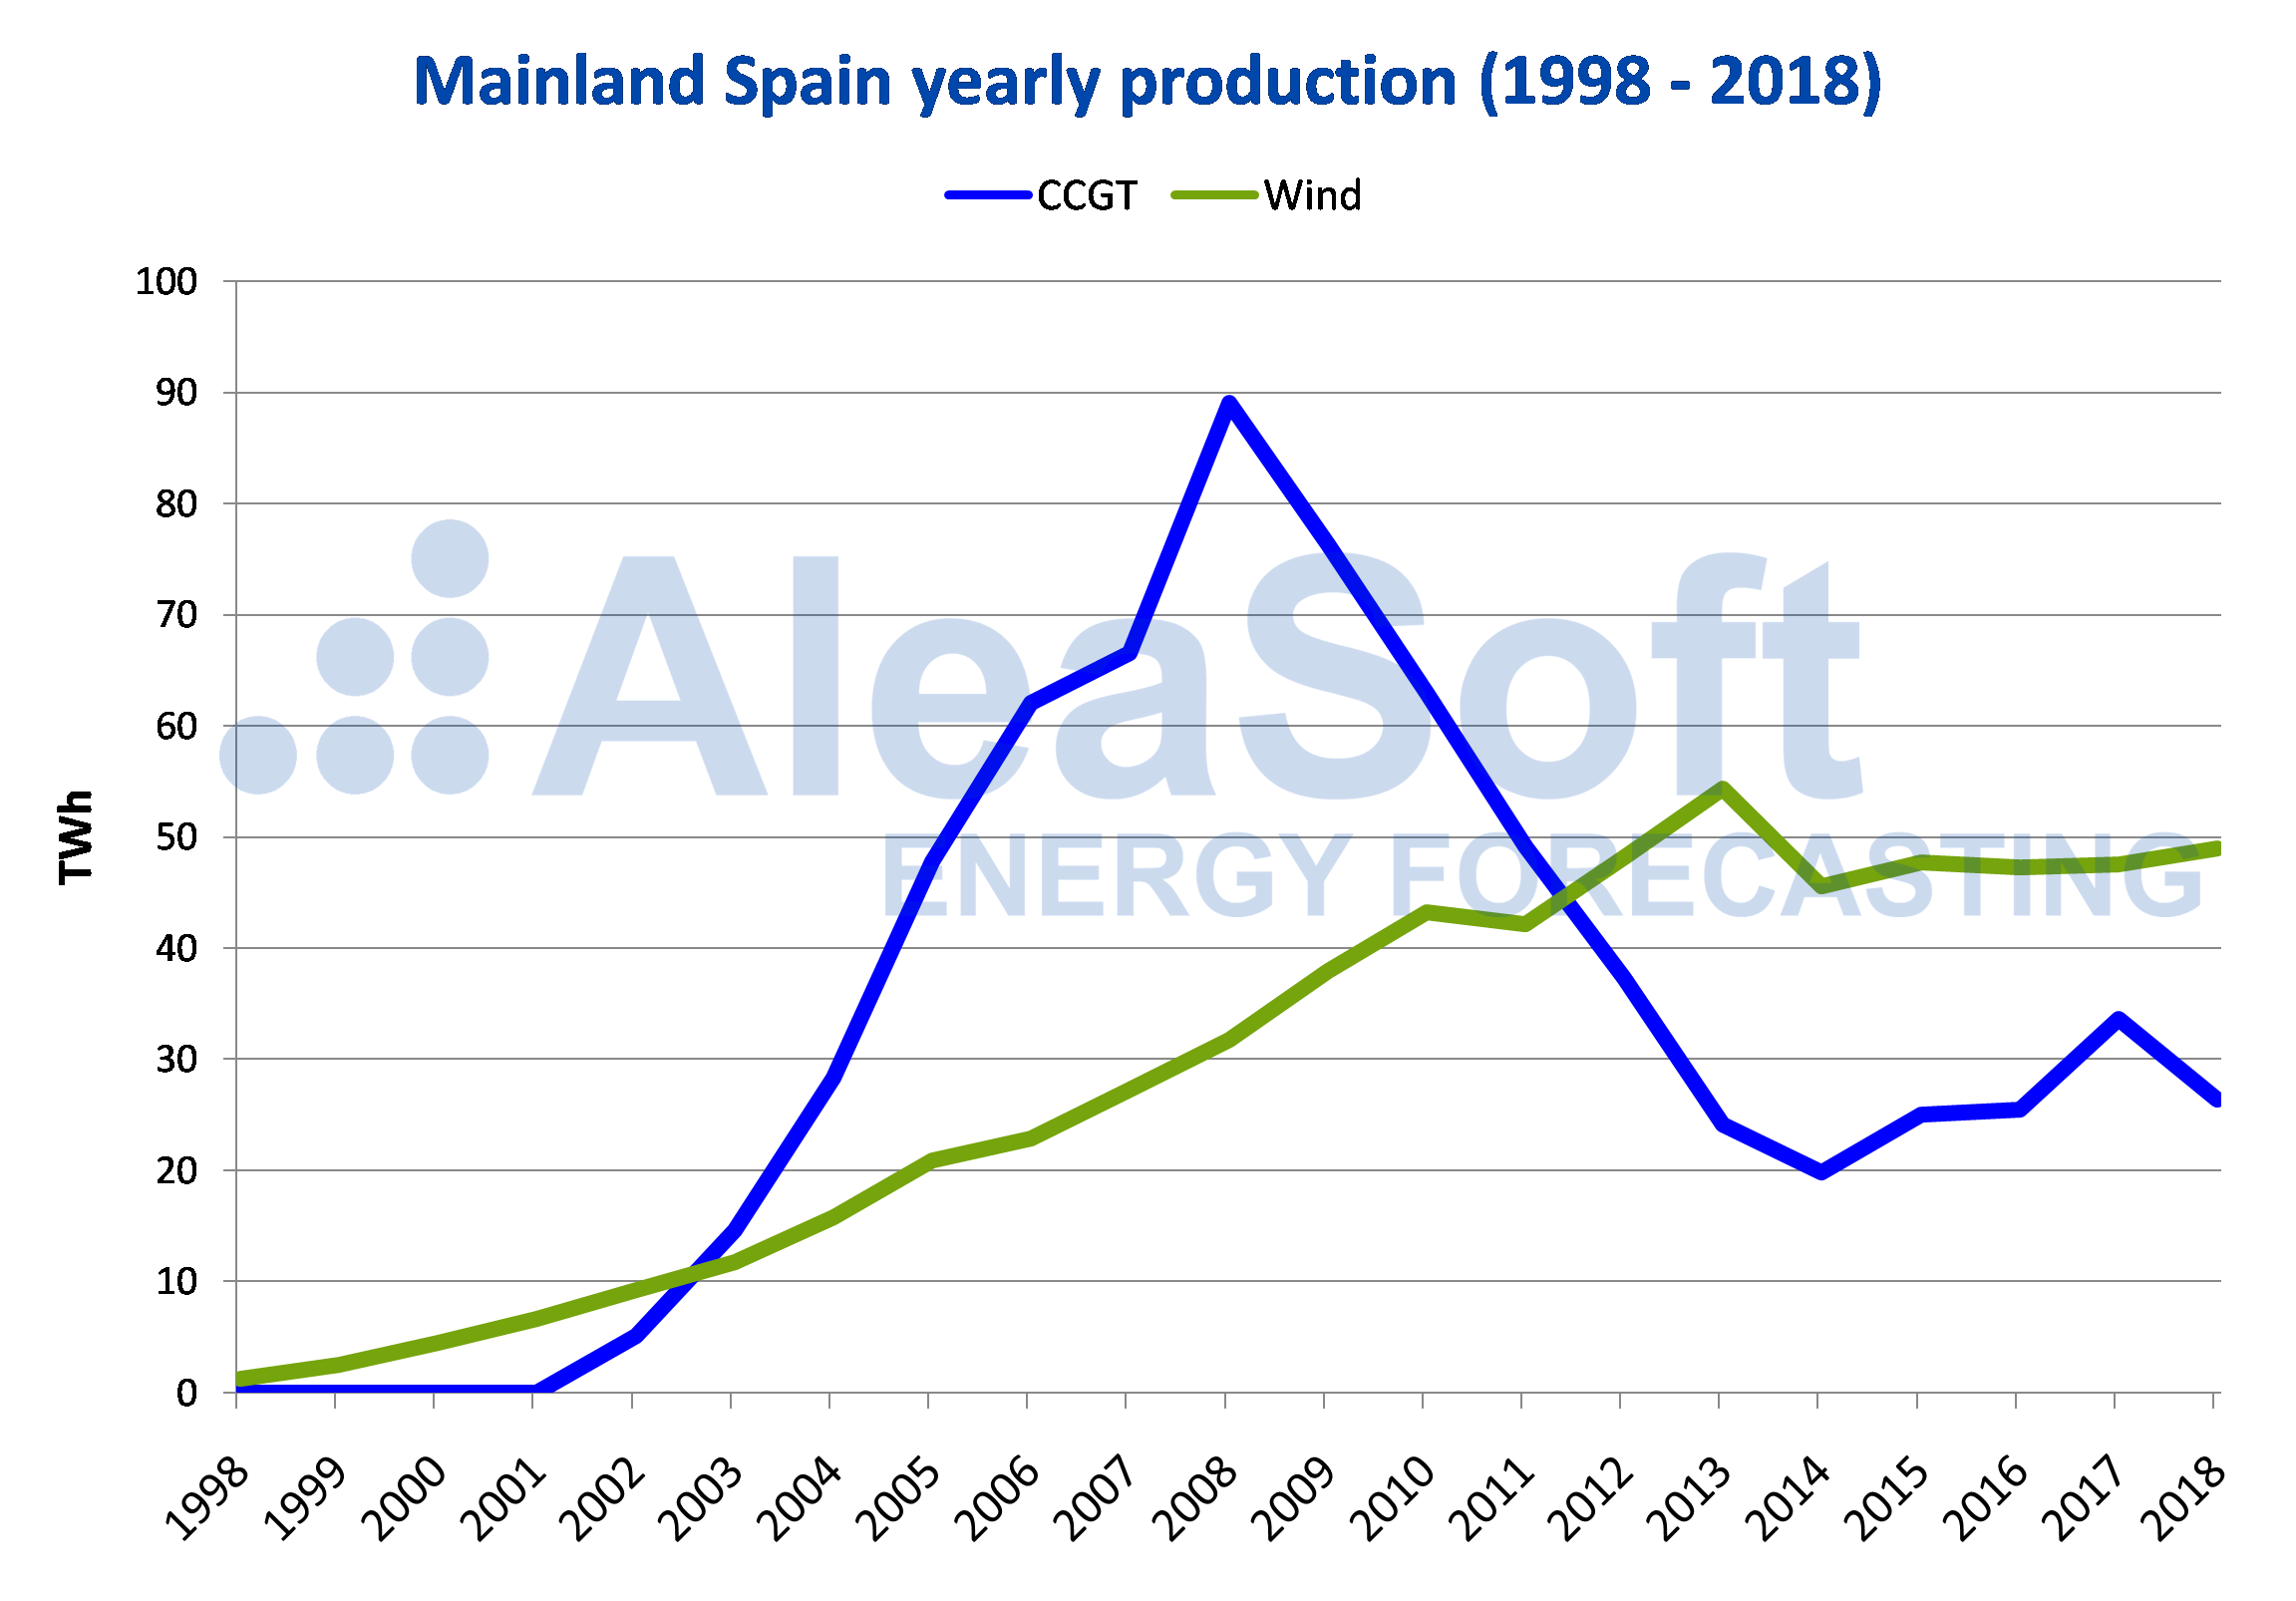 AleaSoft - Mainland Spain yearly production